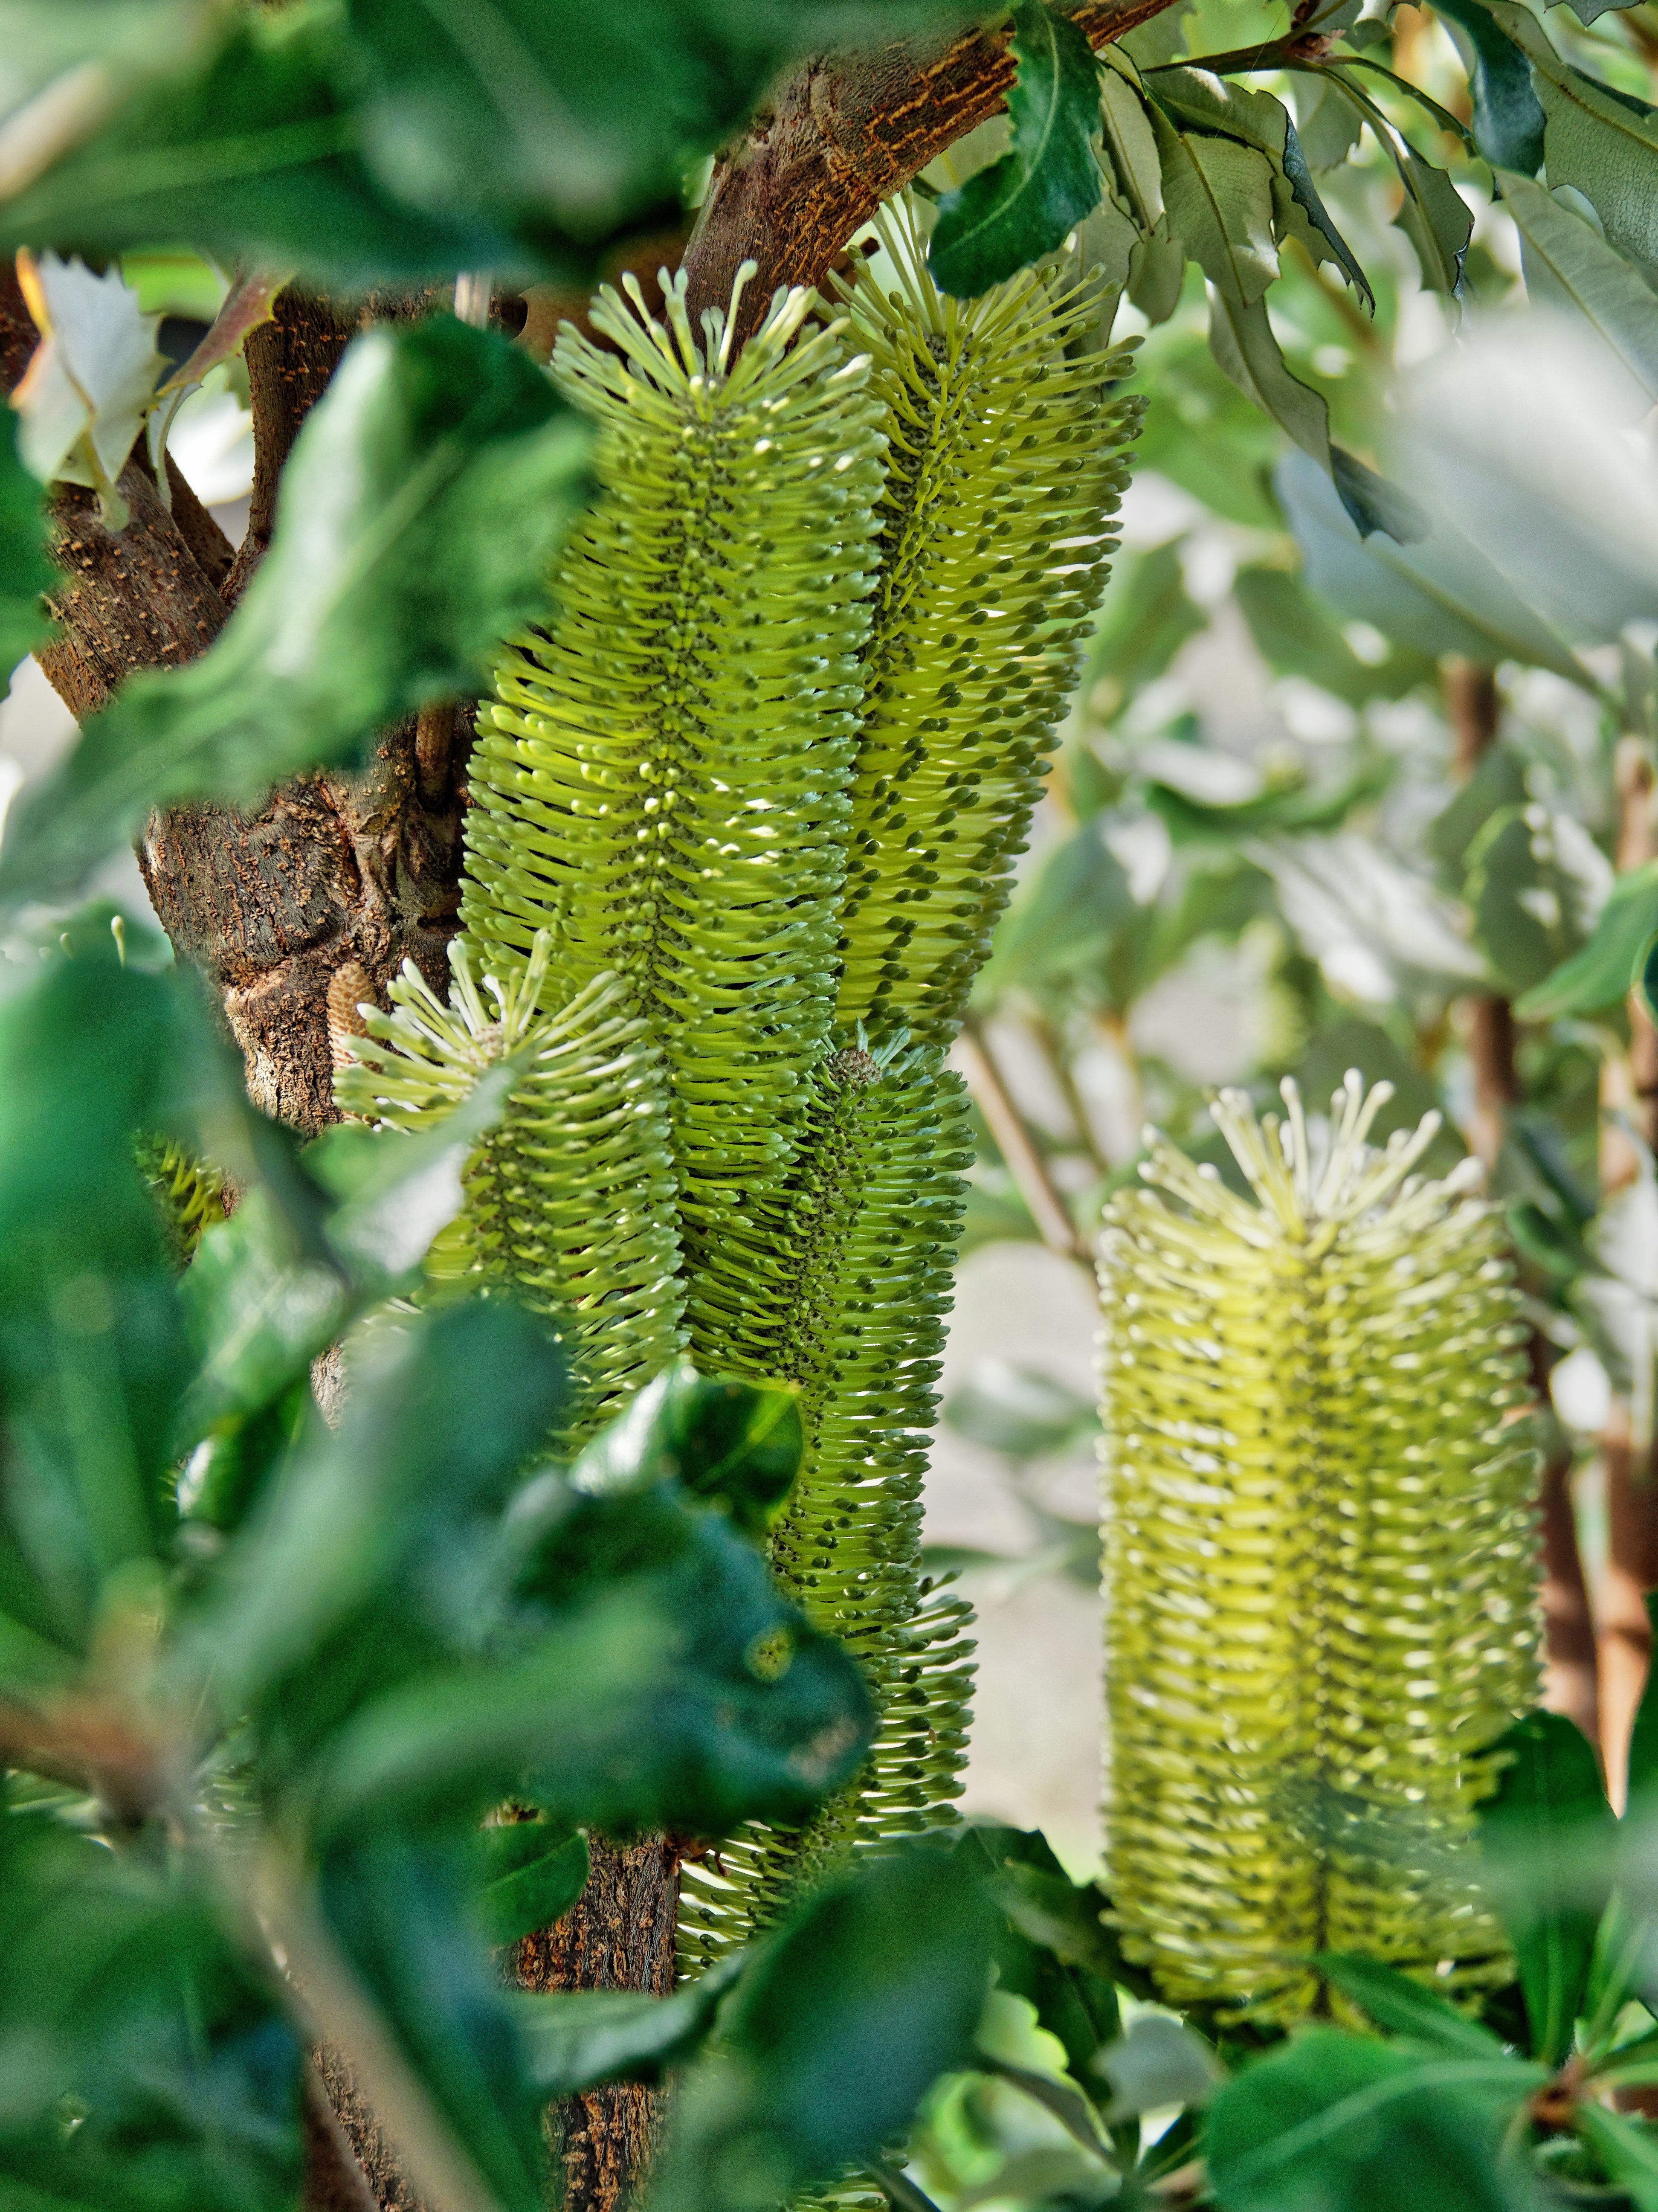 This should be Banksia-2.jpeg.  Is it missing?